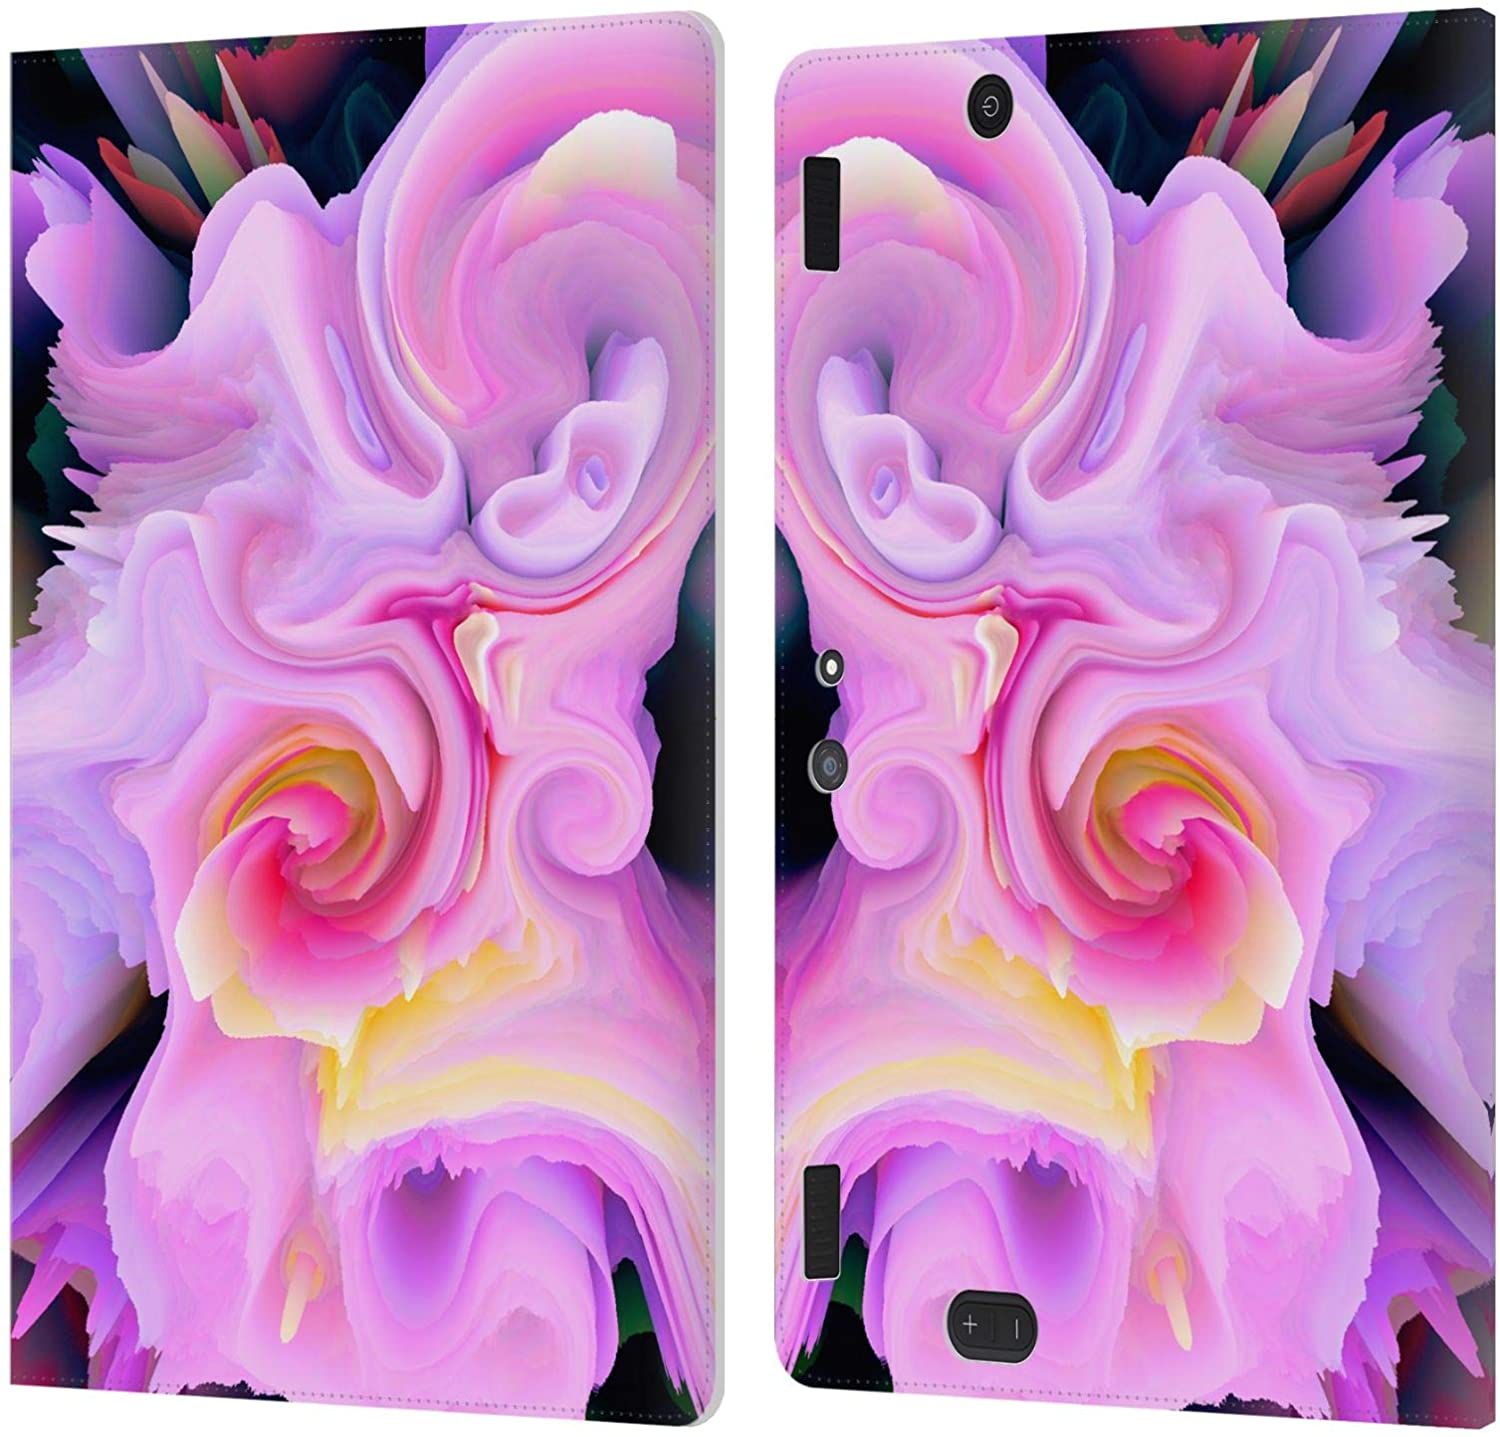 Head Case Designs Officially Licensed Haroulita Romance Floral Glitch 2 Leather Book Wallet Case Cover Compatible with DHgate Kindle Fire HDX 8.9